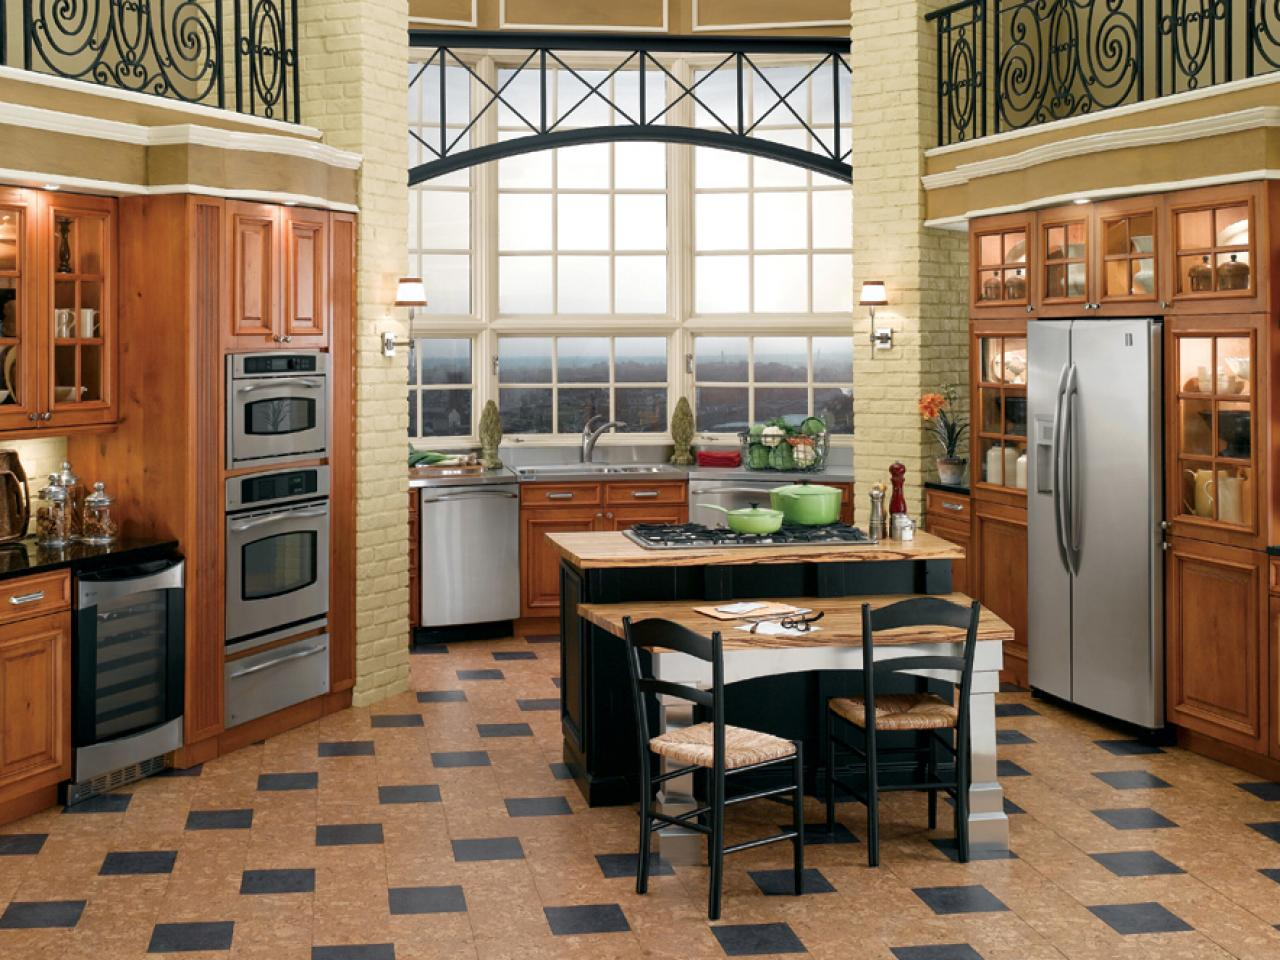 Cork Flooring For Your Kitchen HGTV - Best price on cork flooring